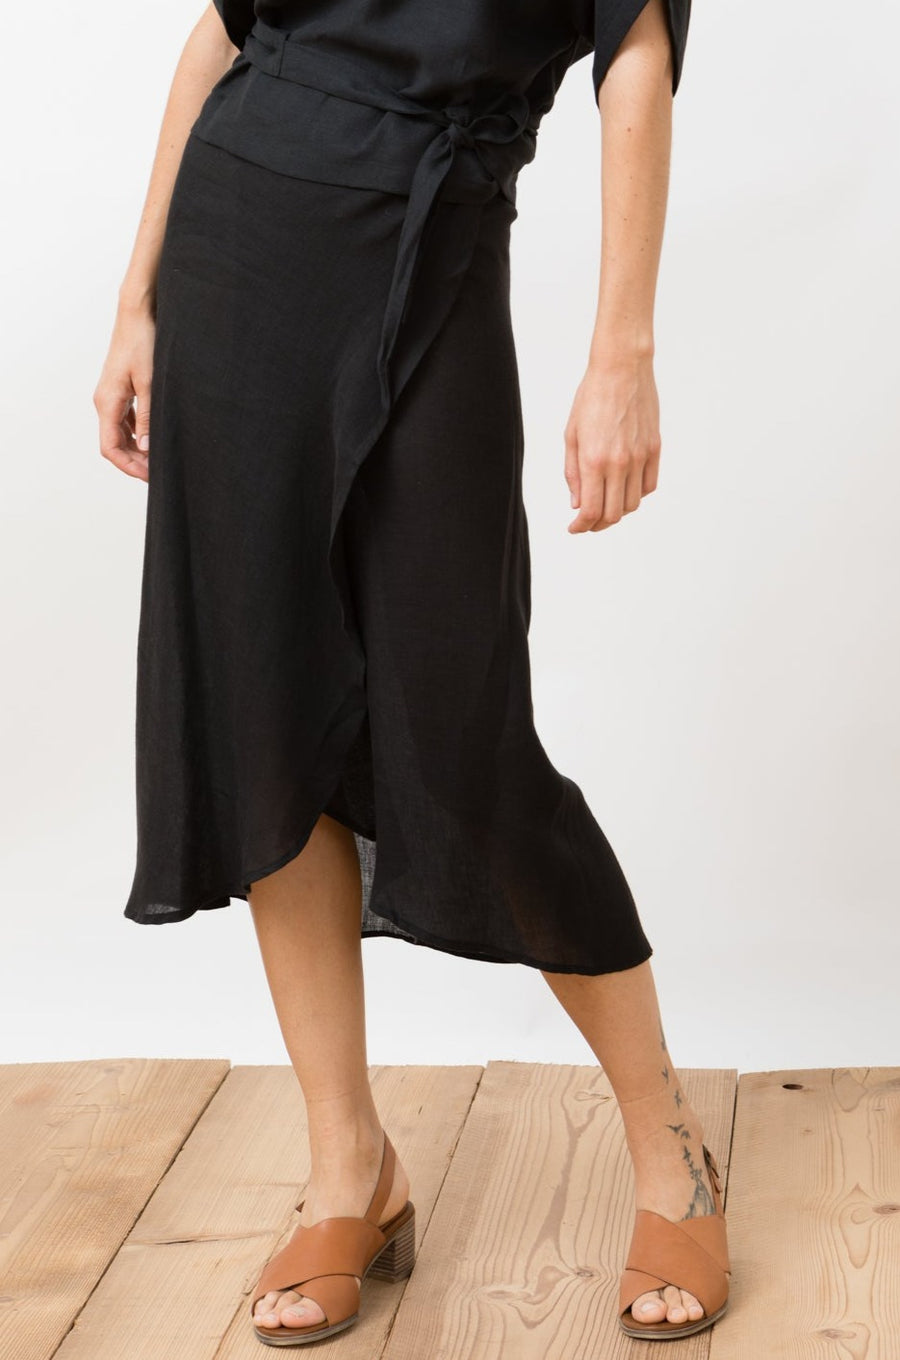 Linen Wrap Skirt Rio Black